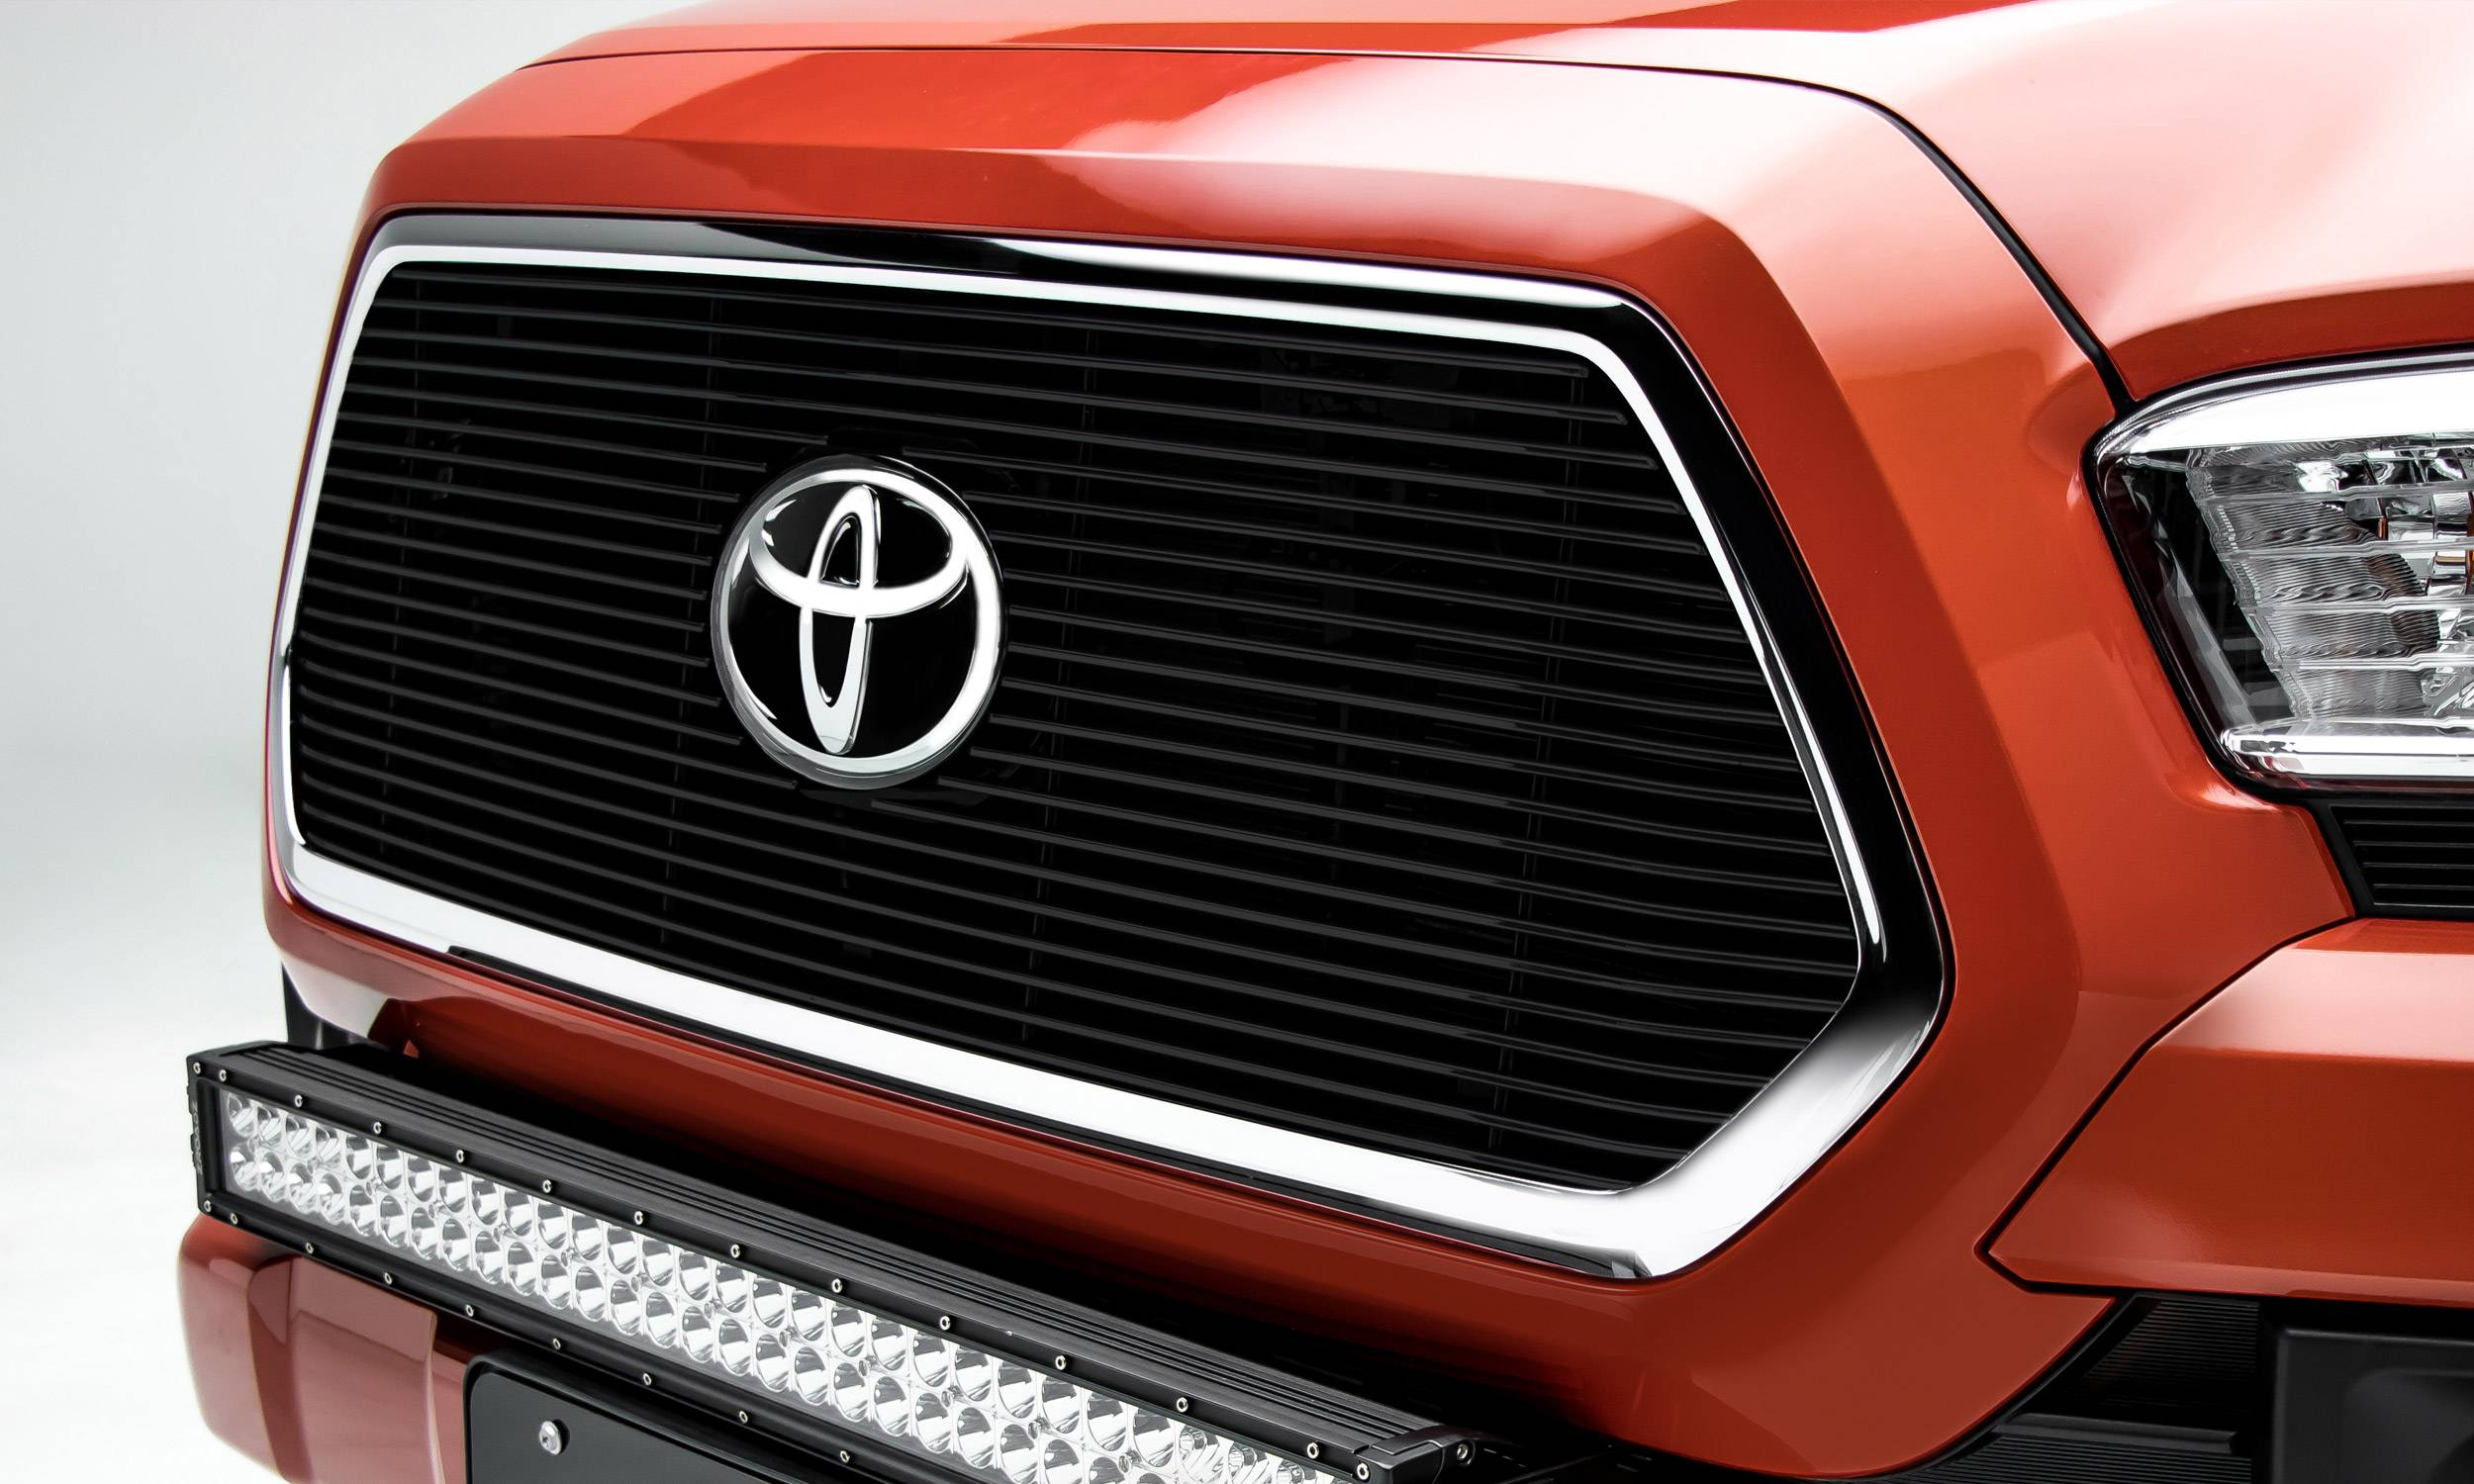 Perfit Liner New Front Black Grille Grill Replacement For Toyota Tacoma Pickup Truck Fits TO1200211 5310004110C0